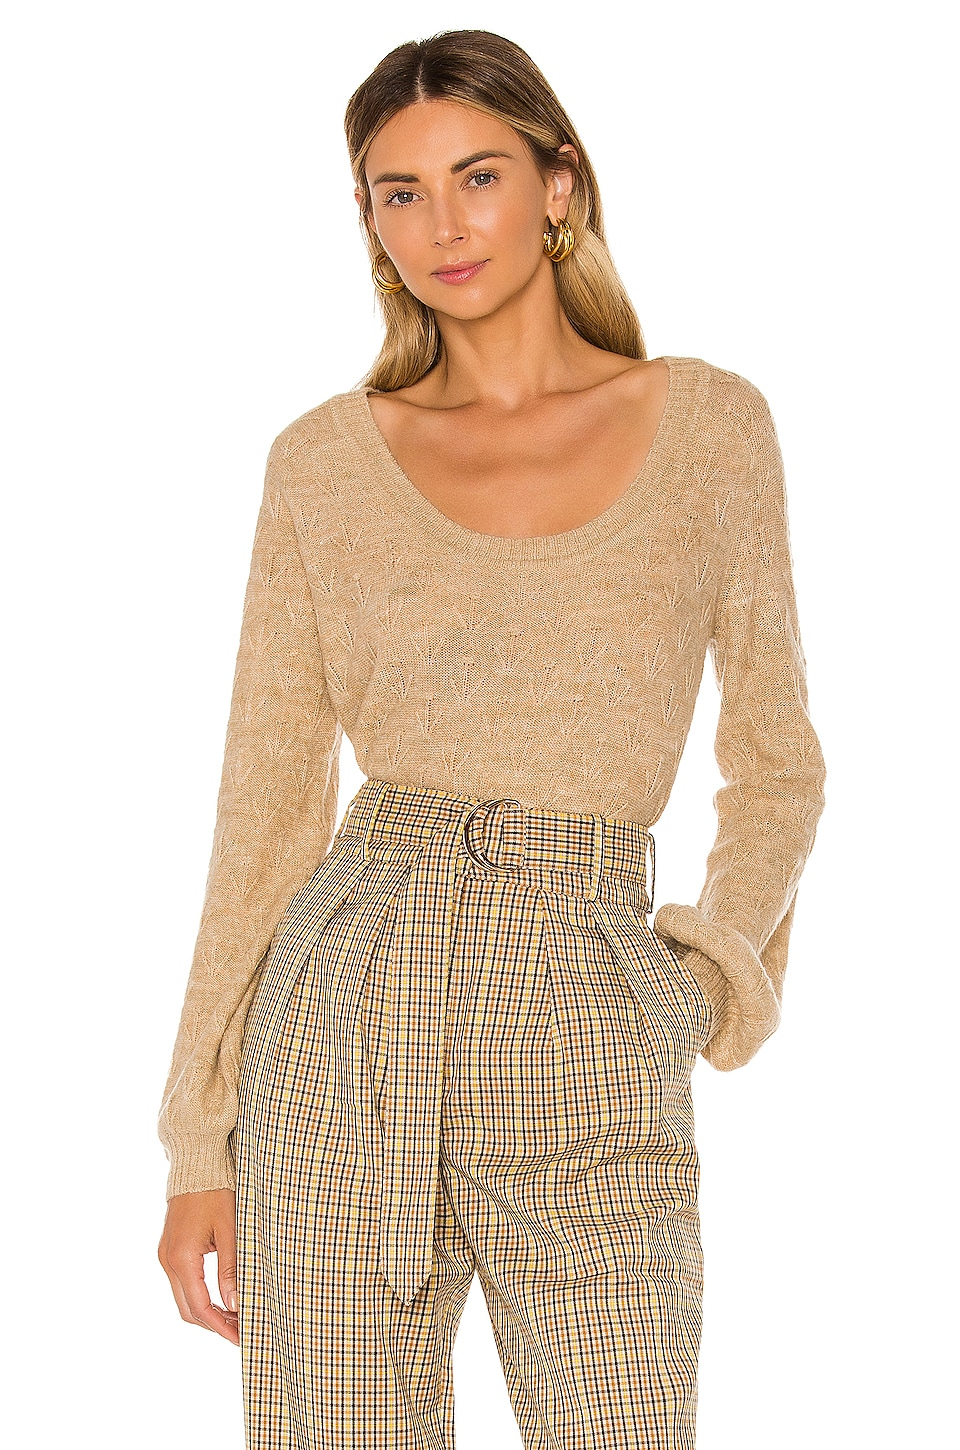 Tularosa Lulu Sweater in Tan